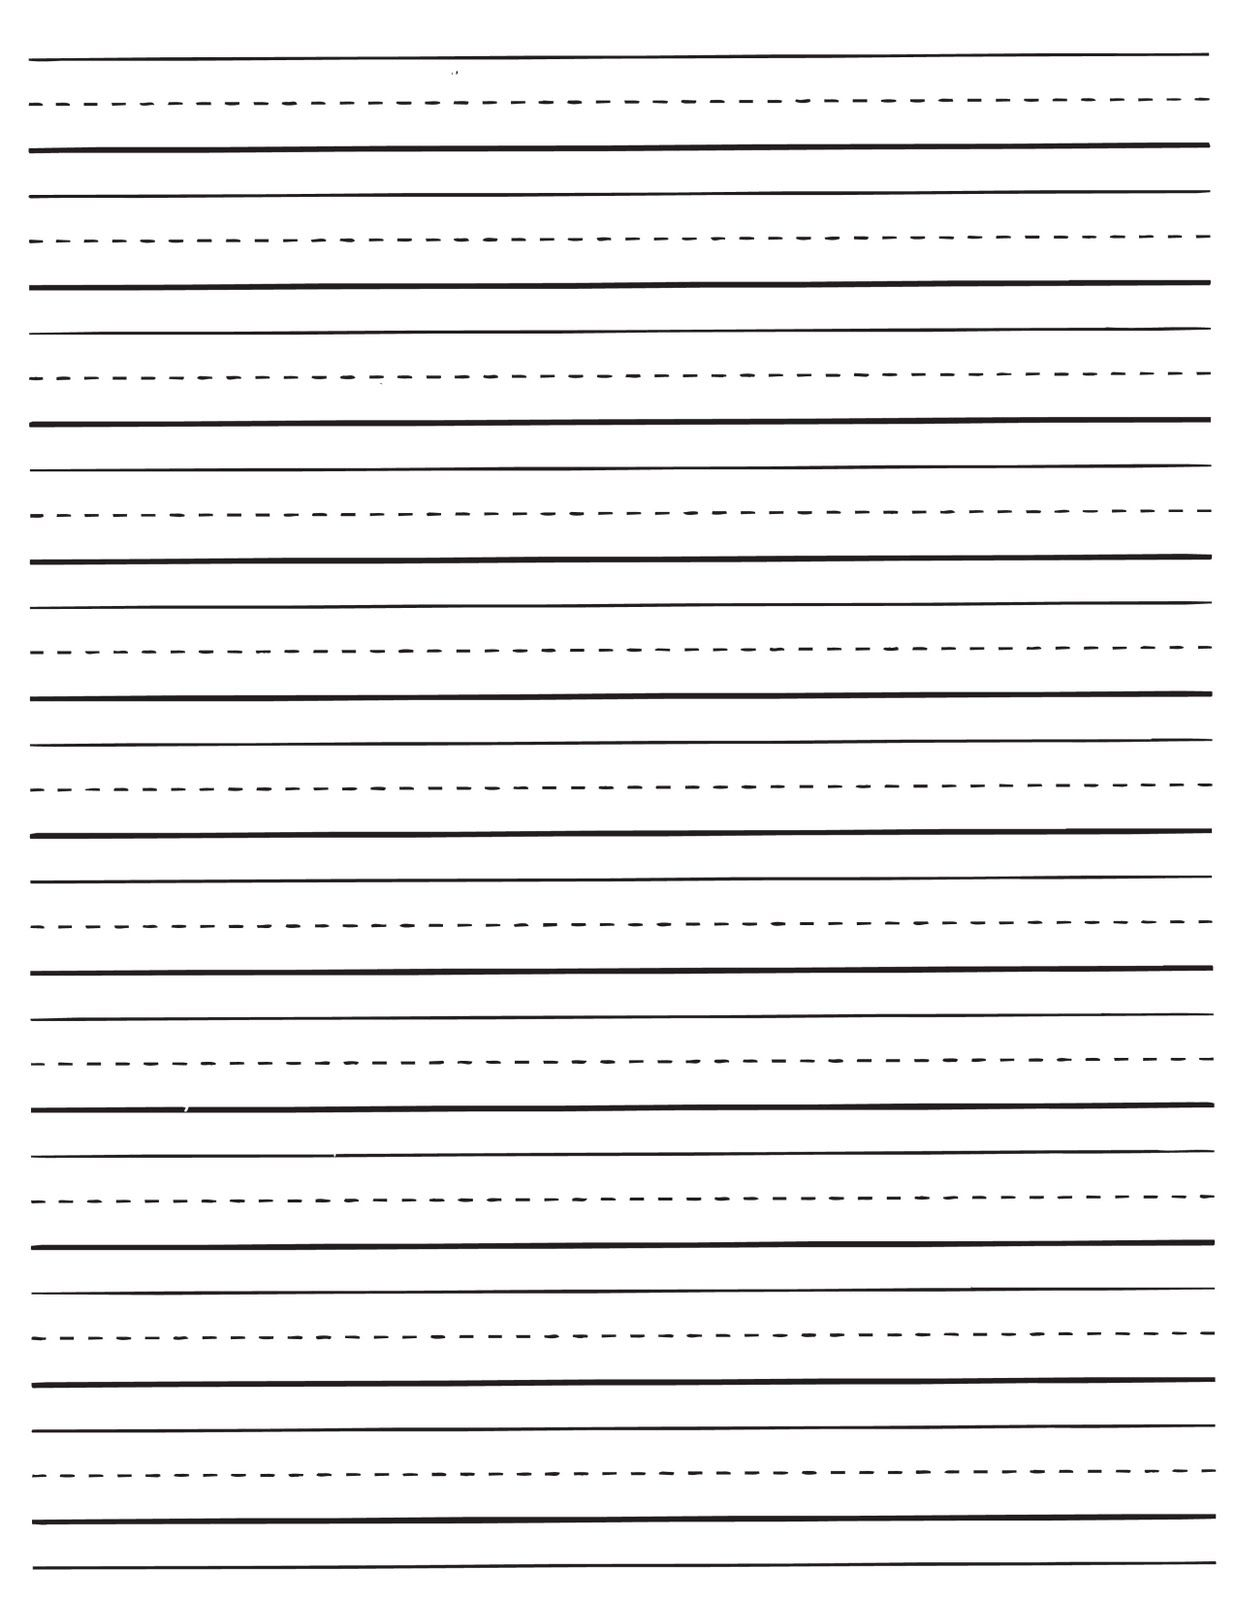 linedpaperforprojectorjpg 1236 1600 Printables – School Writing Paper Template